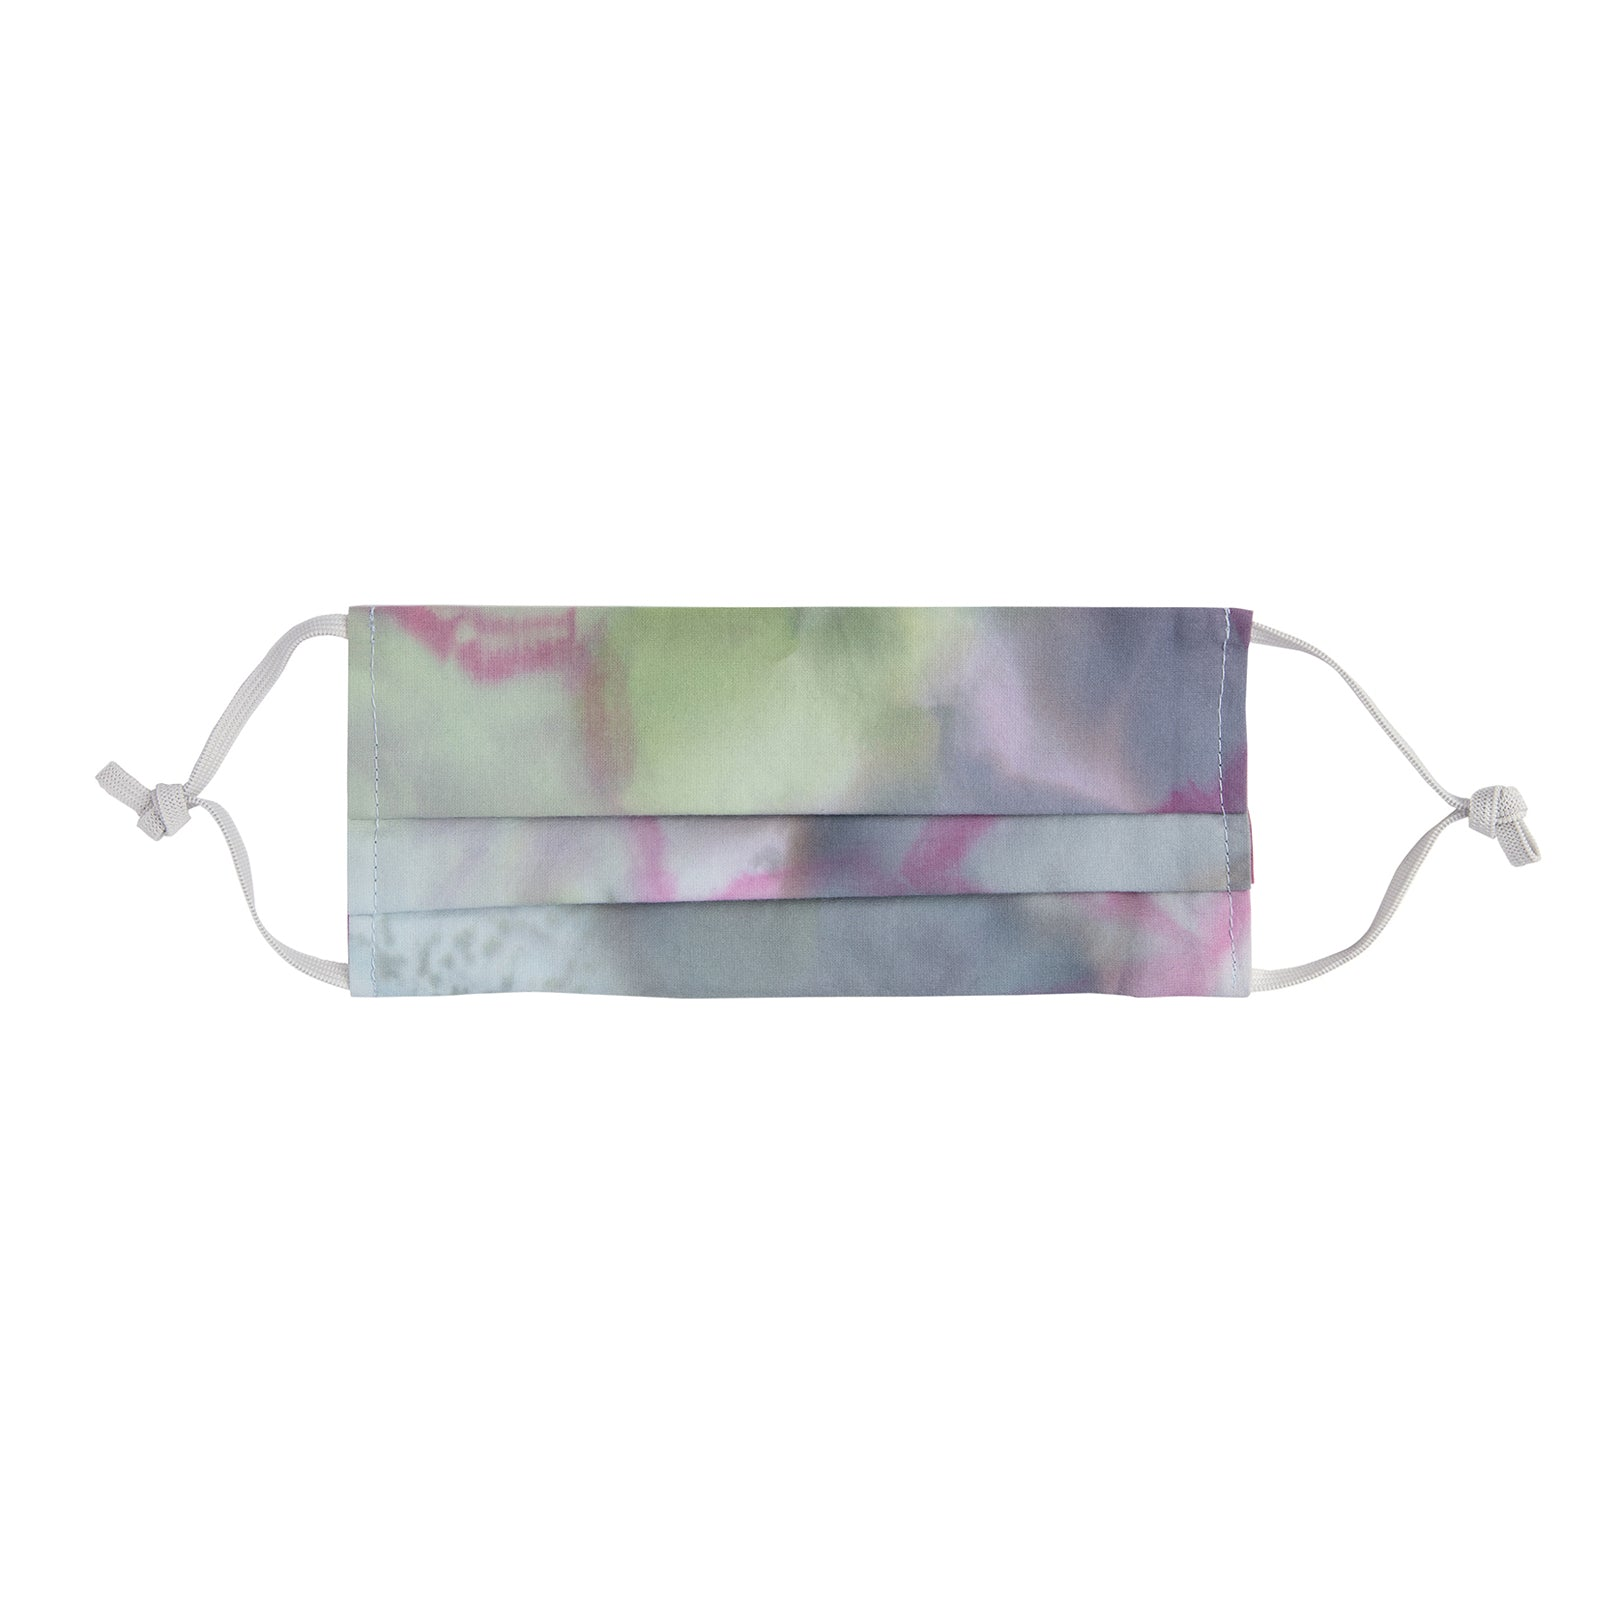 Fraction LA Tie Dye Face Mask - Skittles - Accessories - Broken English Jewelry